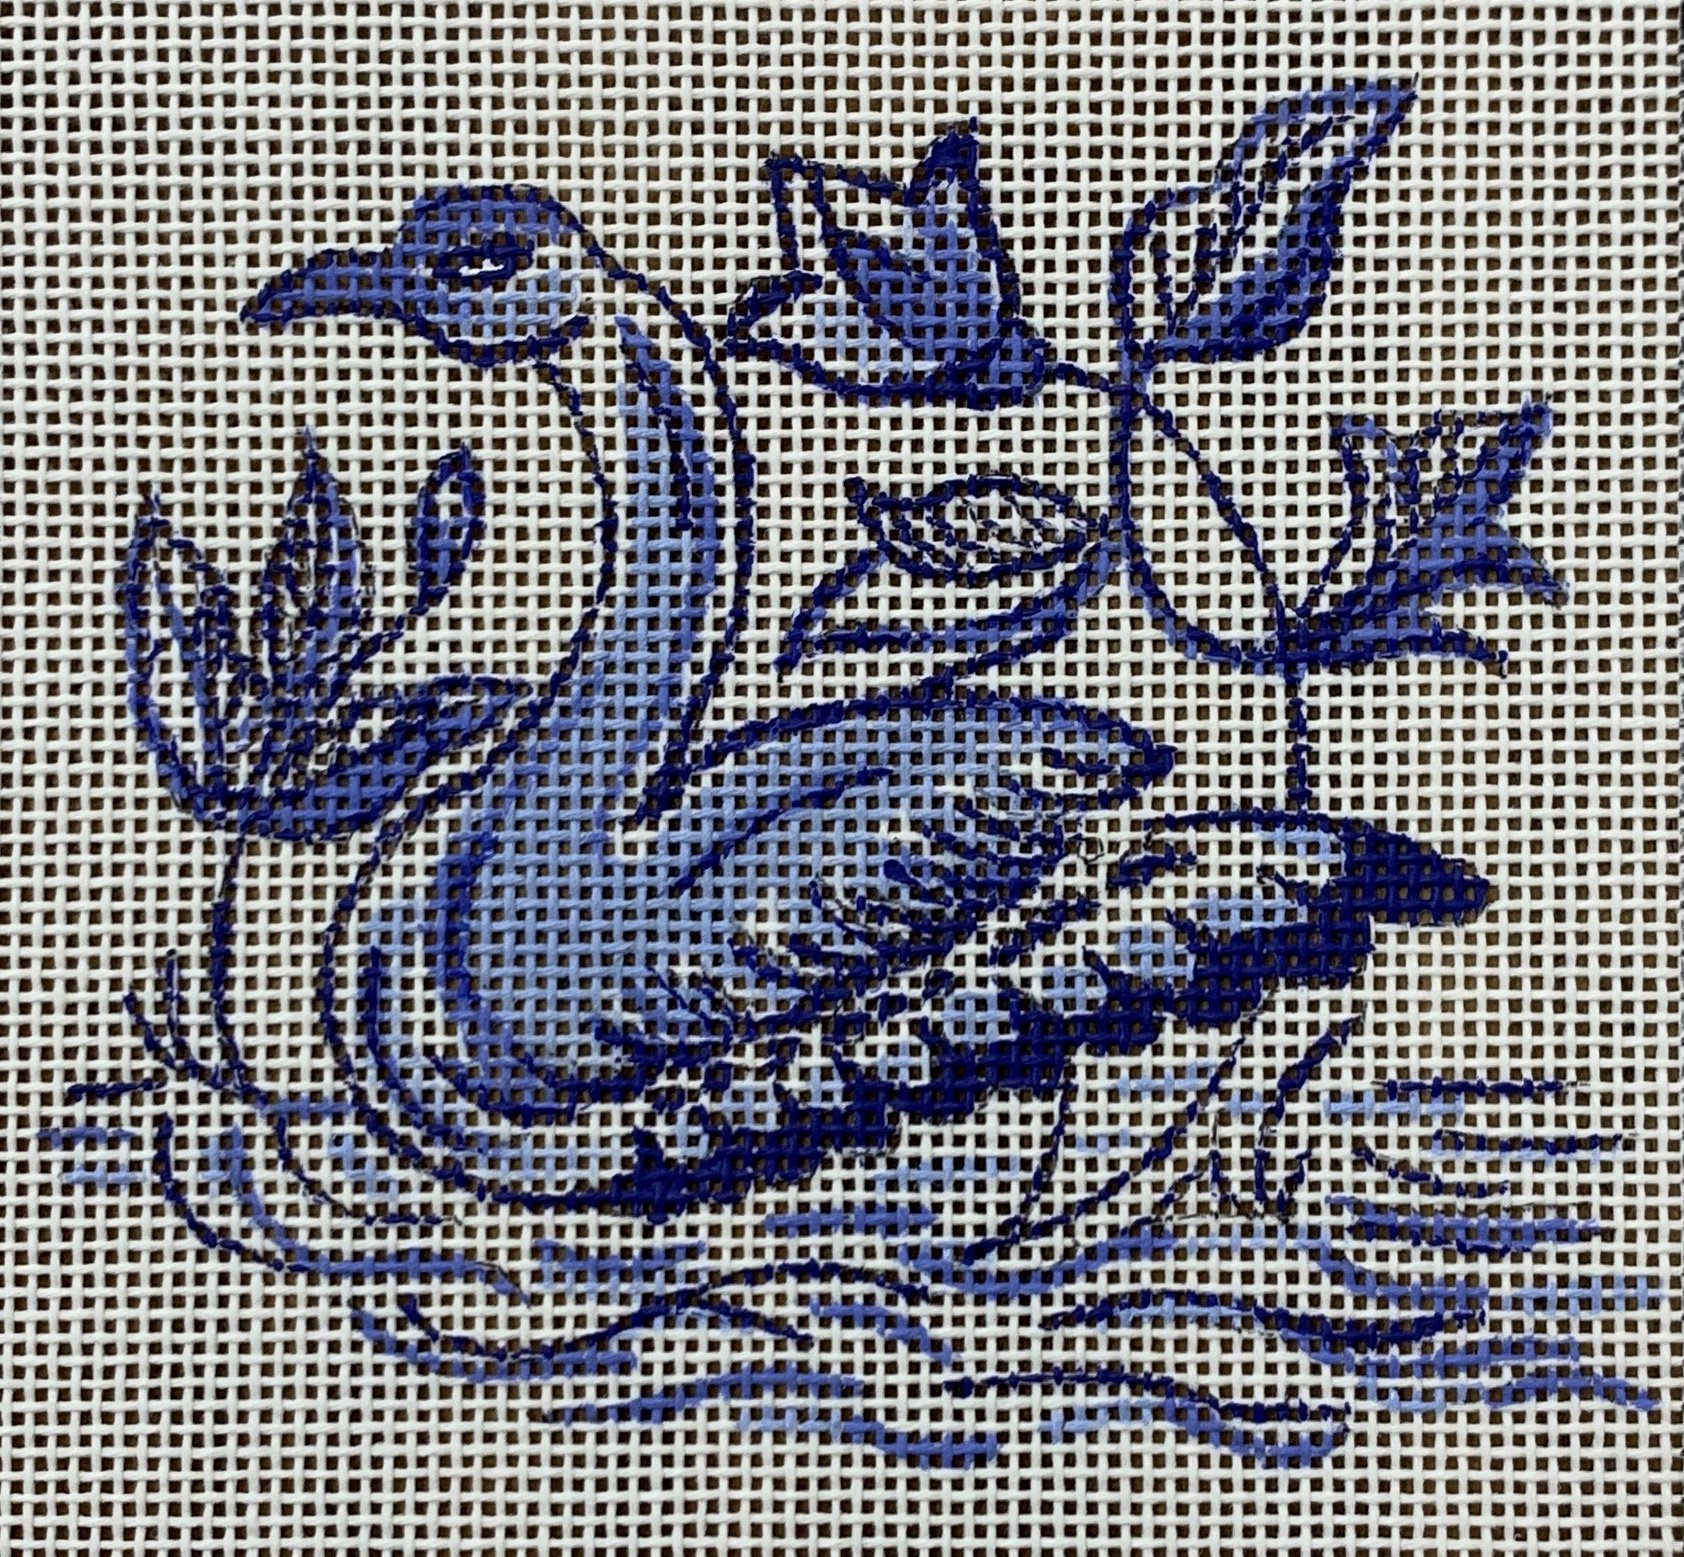 Delft Tiles Collection - Swan